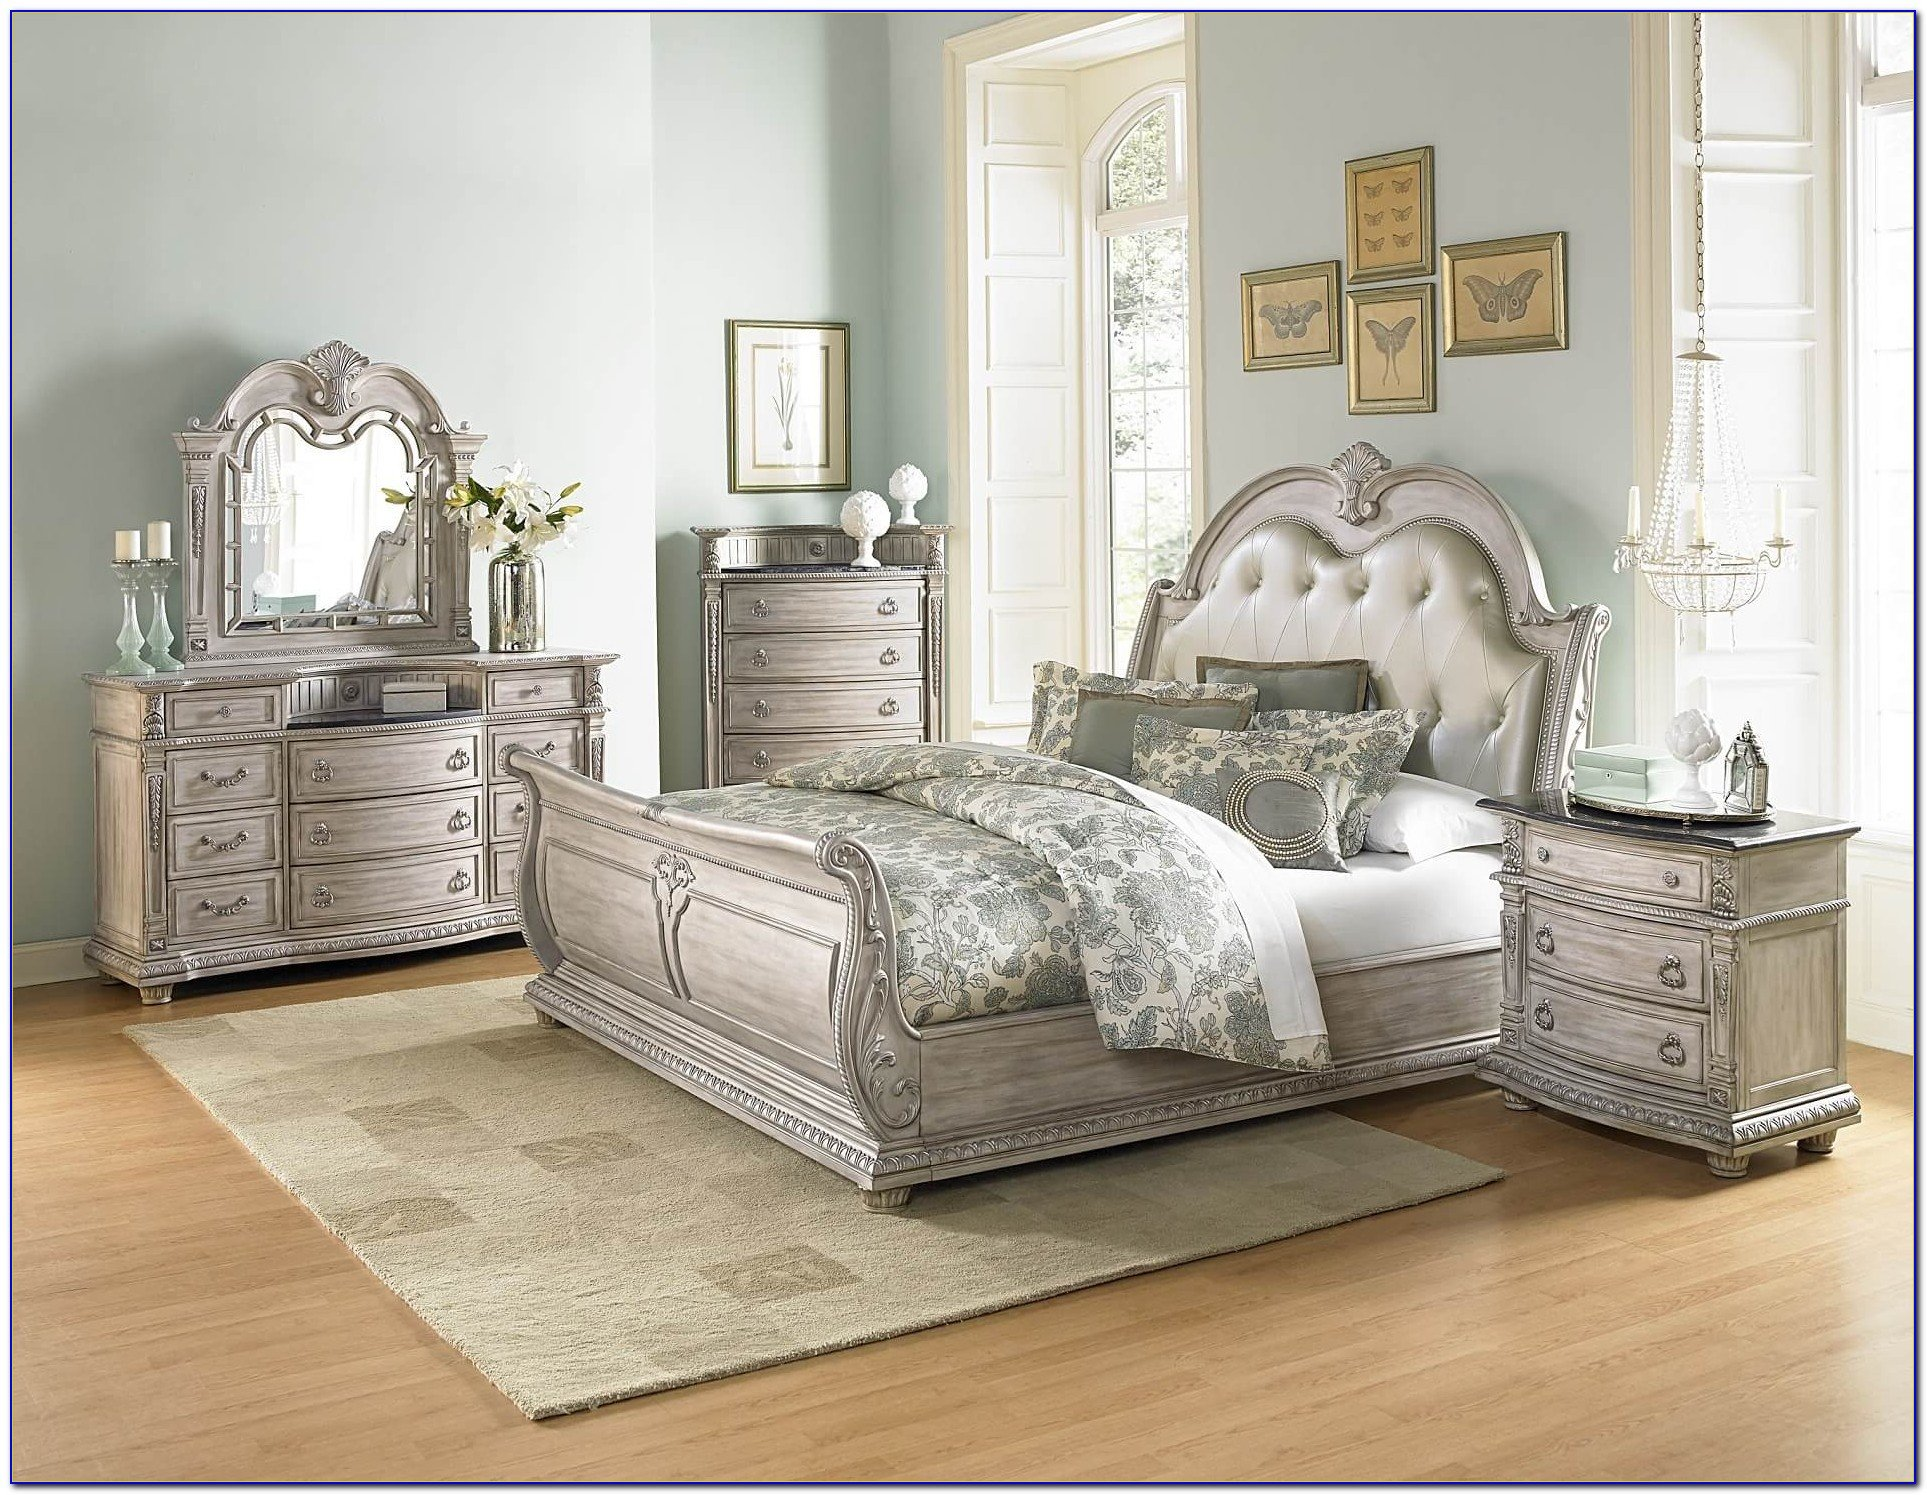 Distressed White Bedroom Furniture Fresh White Washed Bedroom Furniture Nz Home Design Ideas